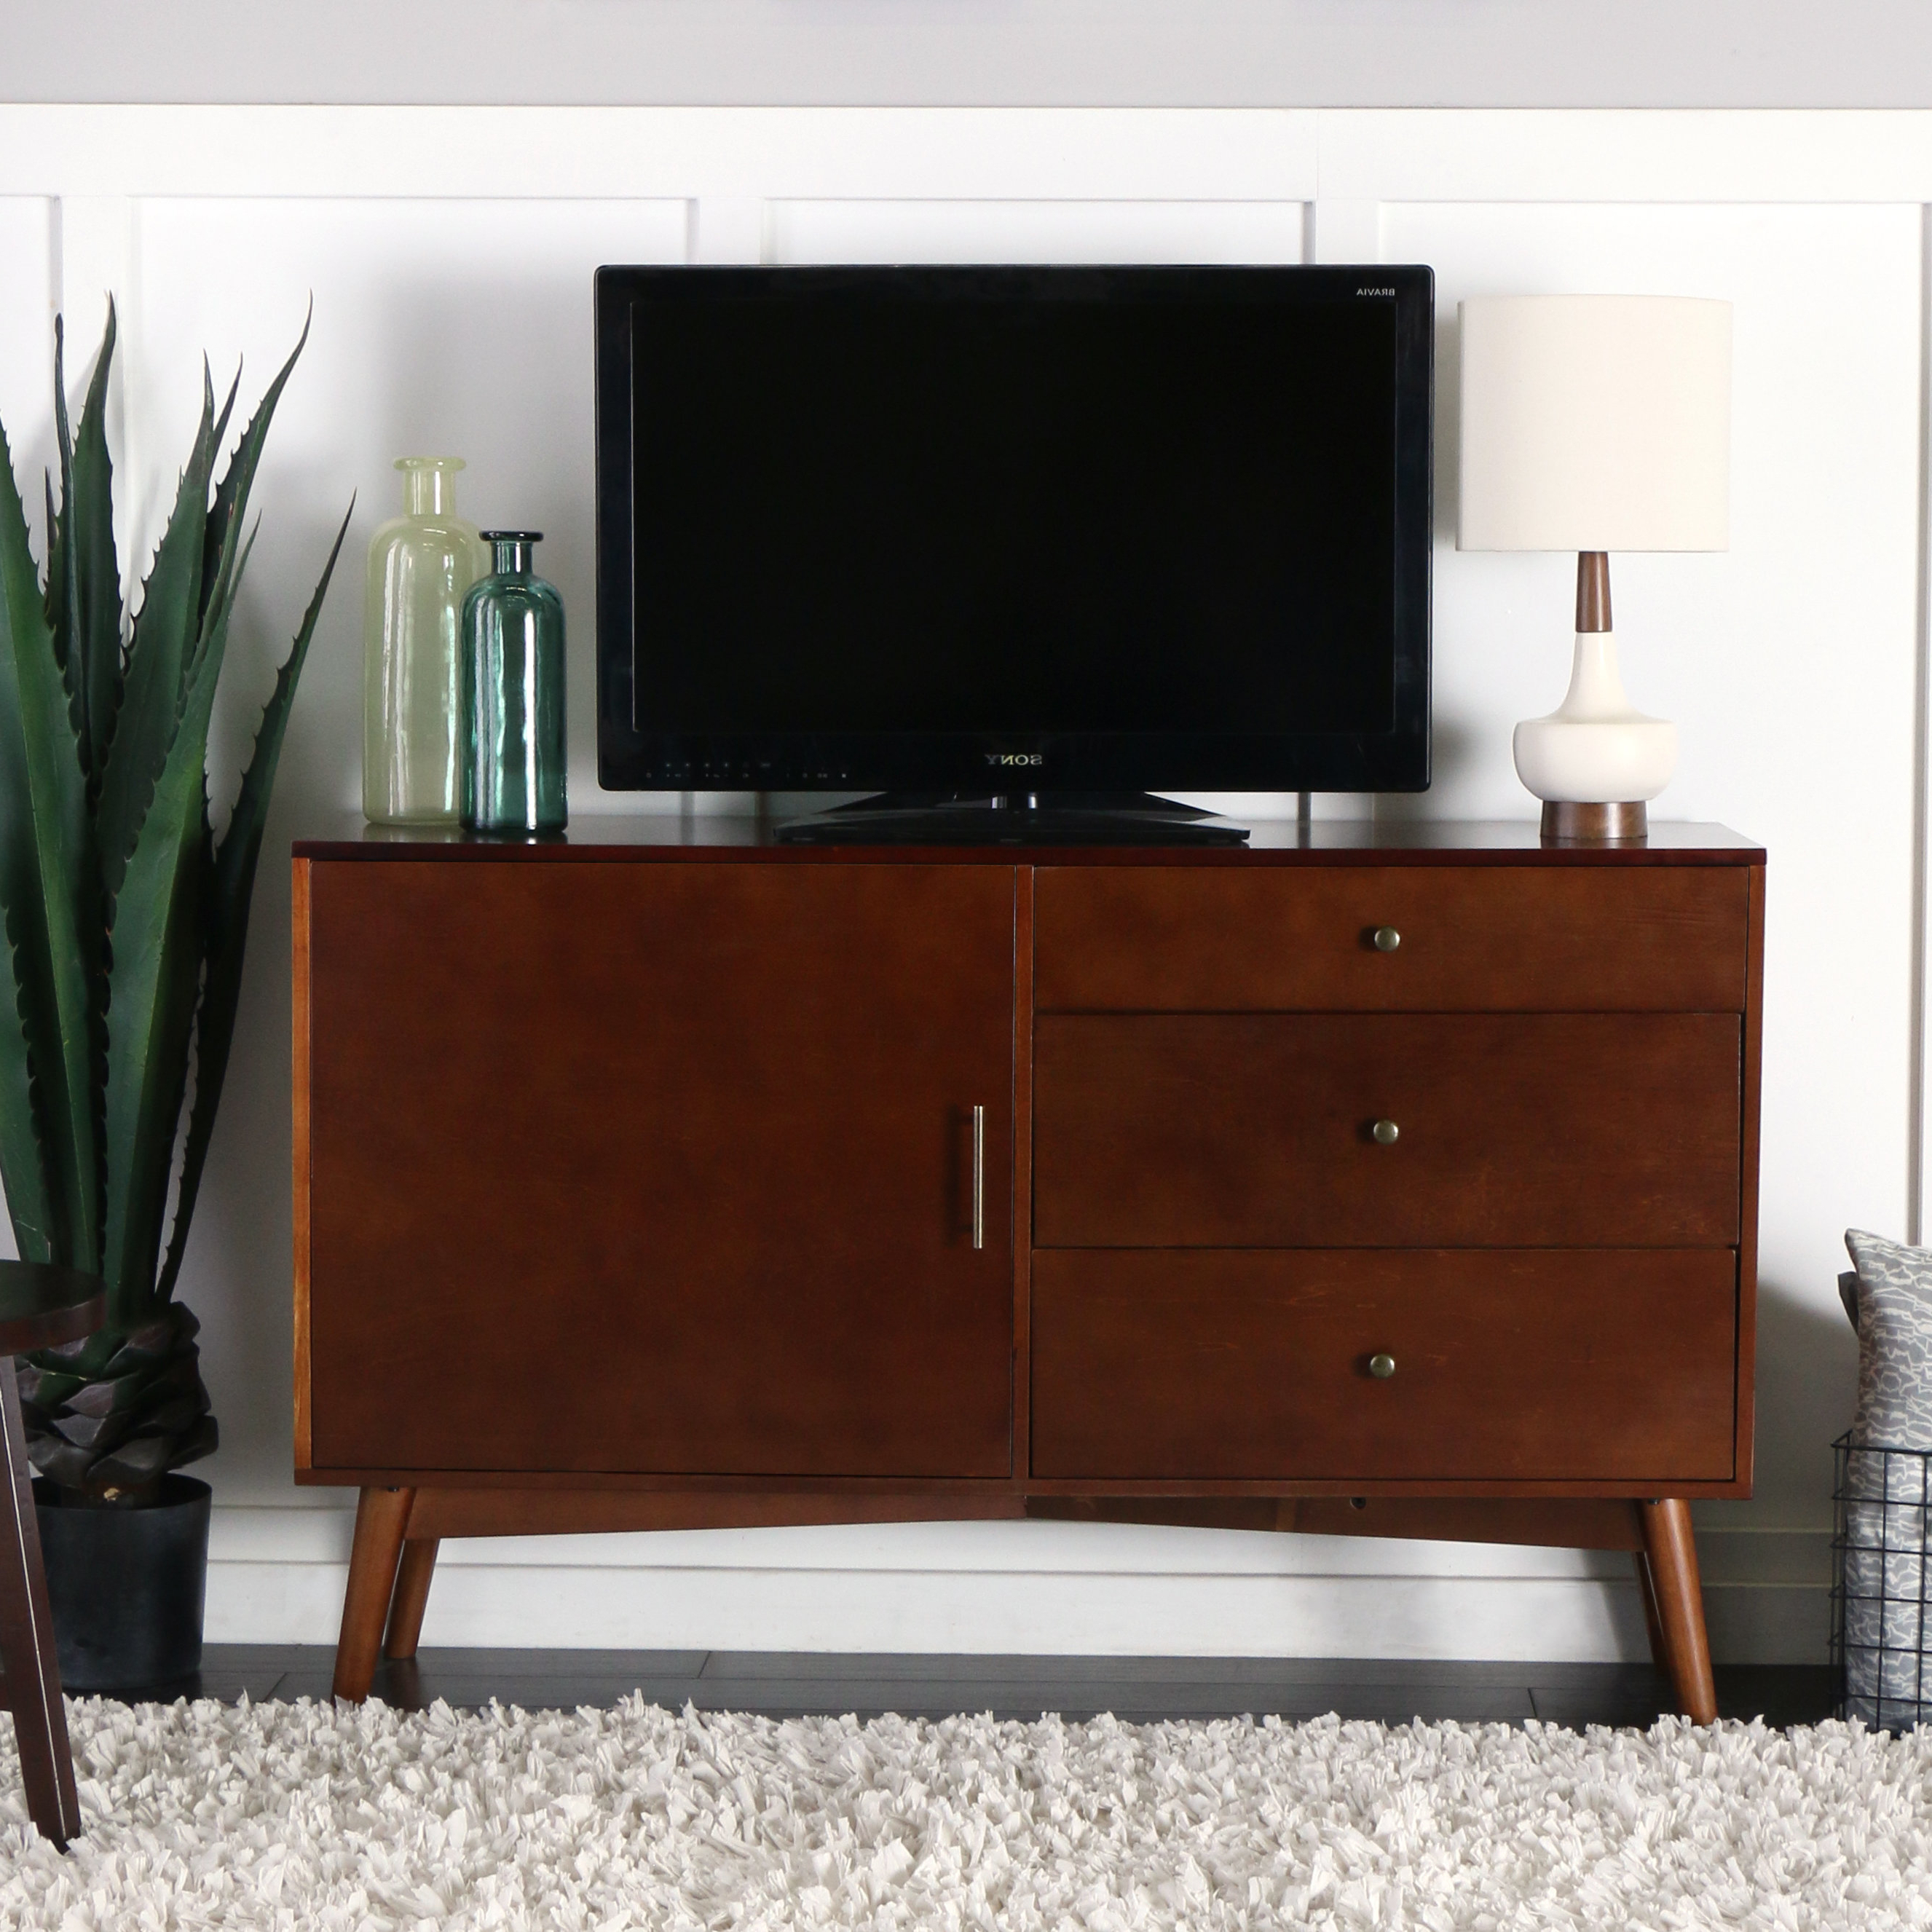 Tall Tv Stands You'll Love | Wayfair Regarding Canyon 54 Inch Tv Stands (View 11 of 20)